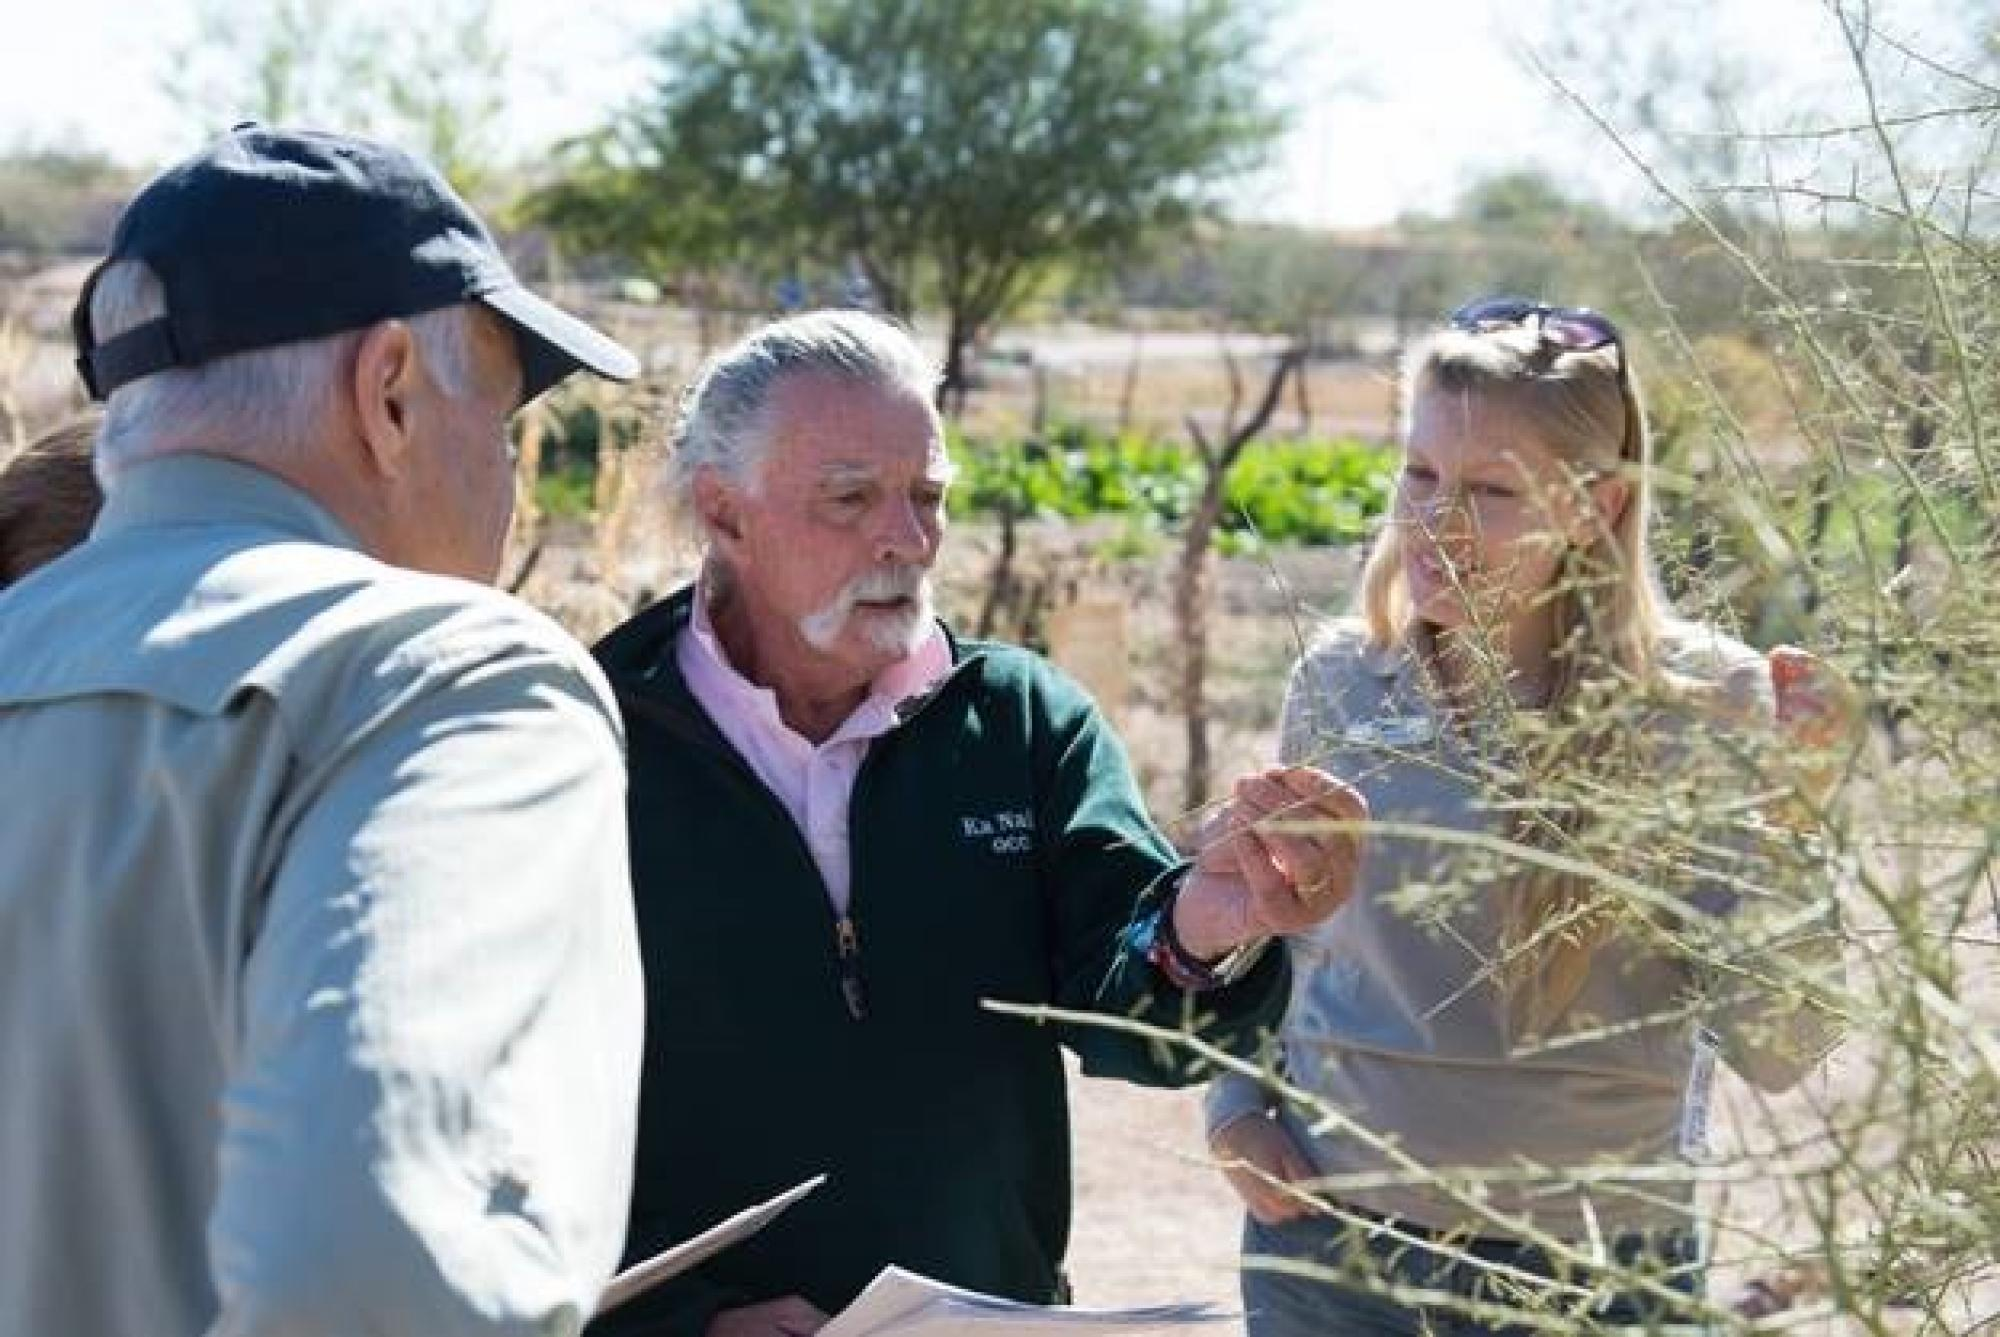 At the Tucson Mission Gardens, Nature's Notebook observers Jim Love  and Hank Verbais  learn to appreciate changes in the plants they observe, such as young leaves on the palo verde tree. Erin Posthumus , outreach coordinator with the National Phenology N